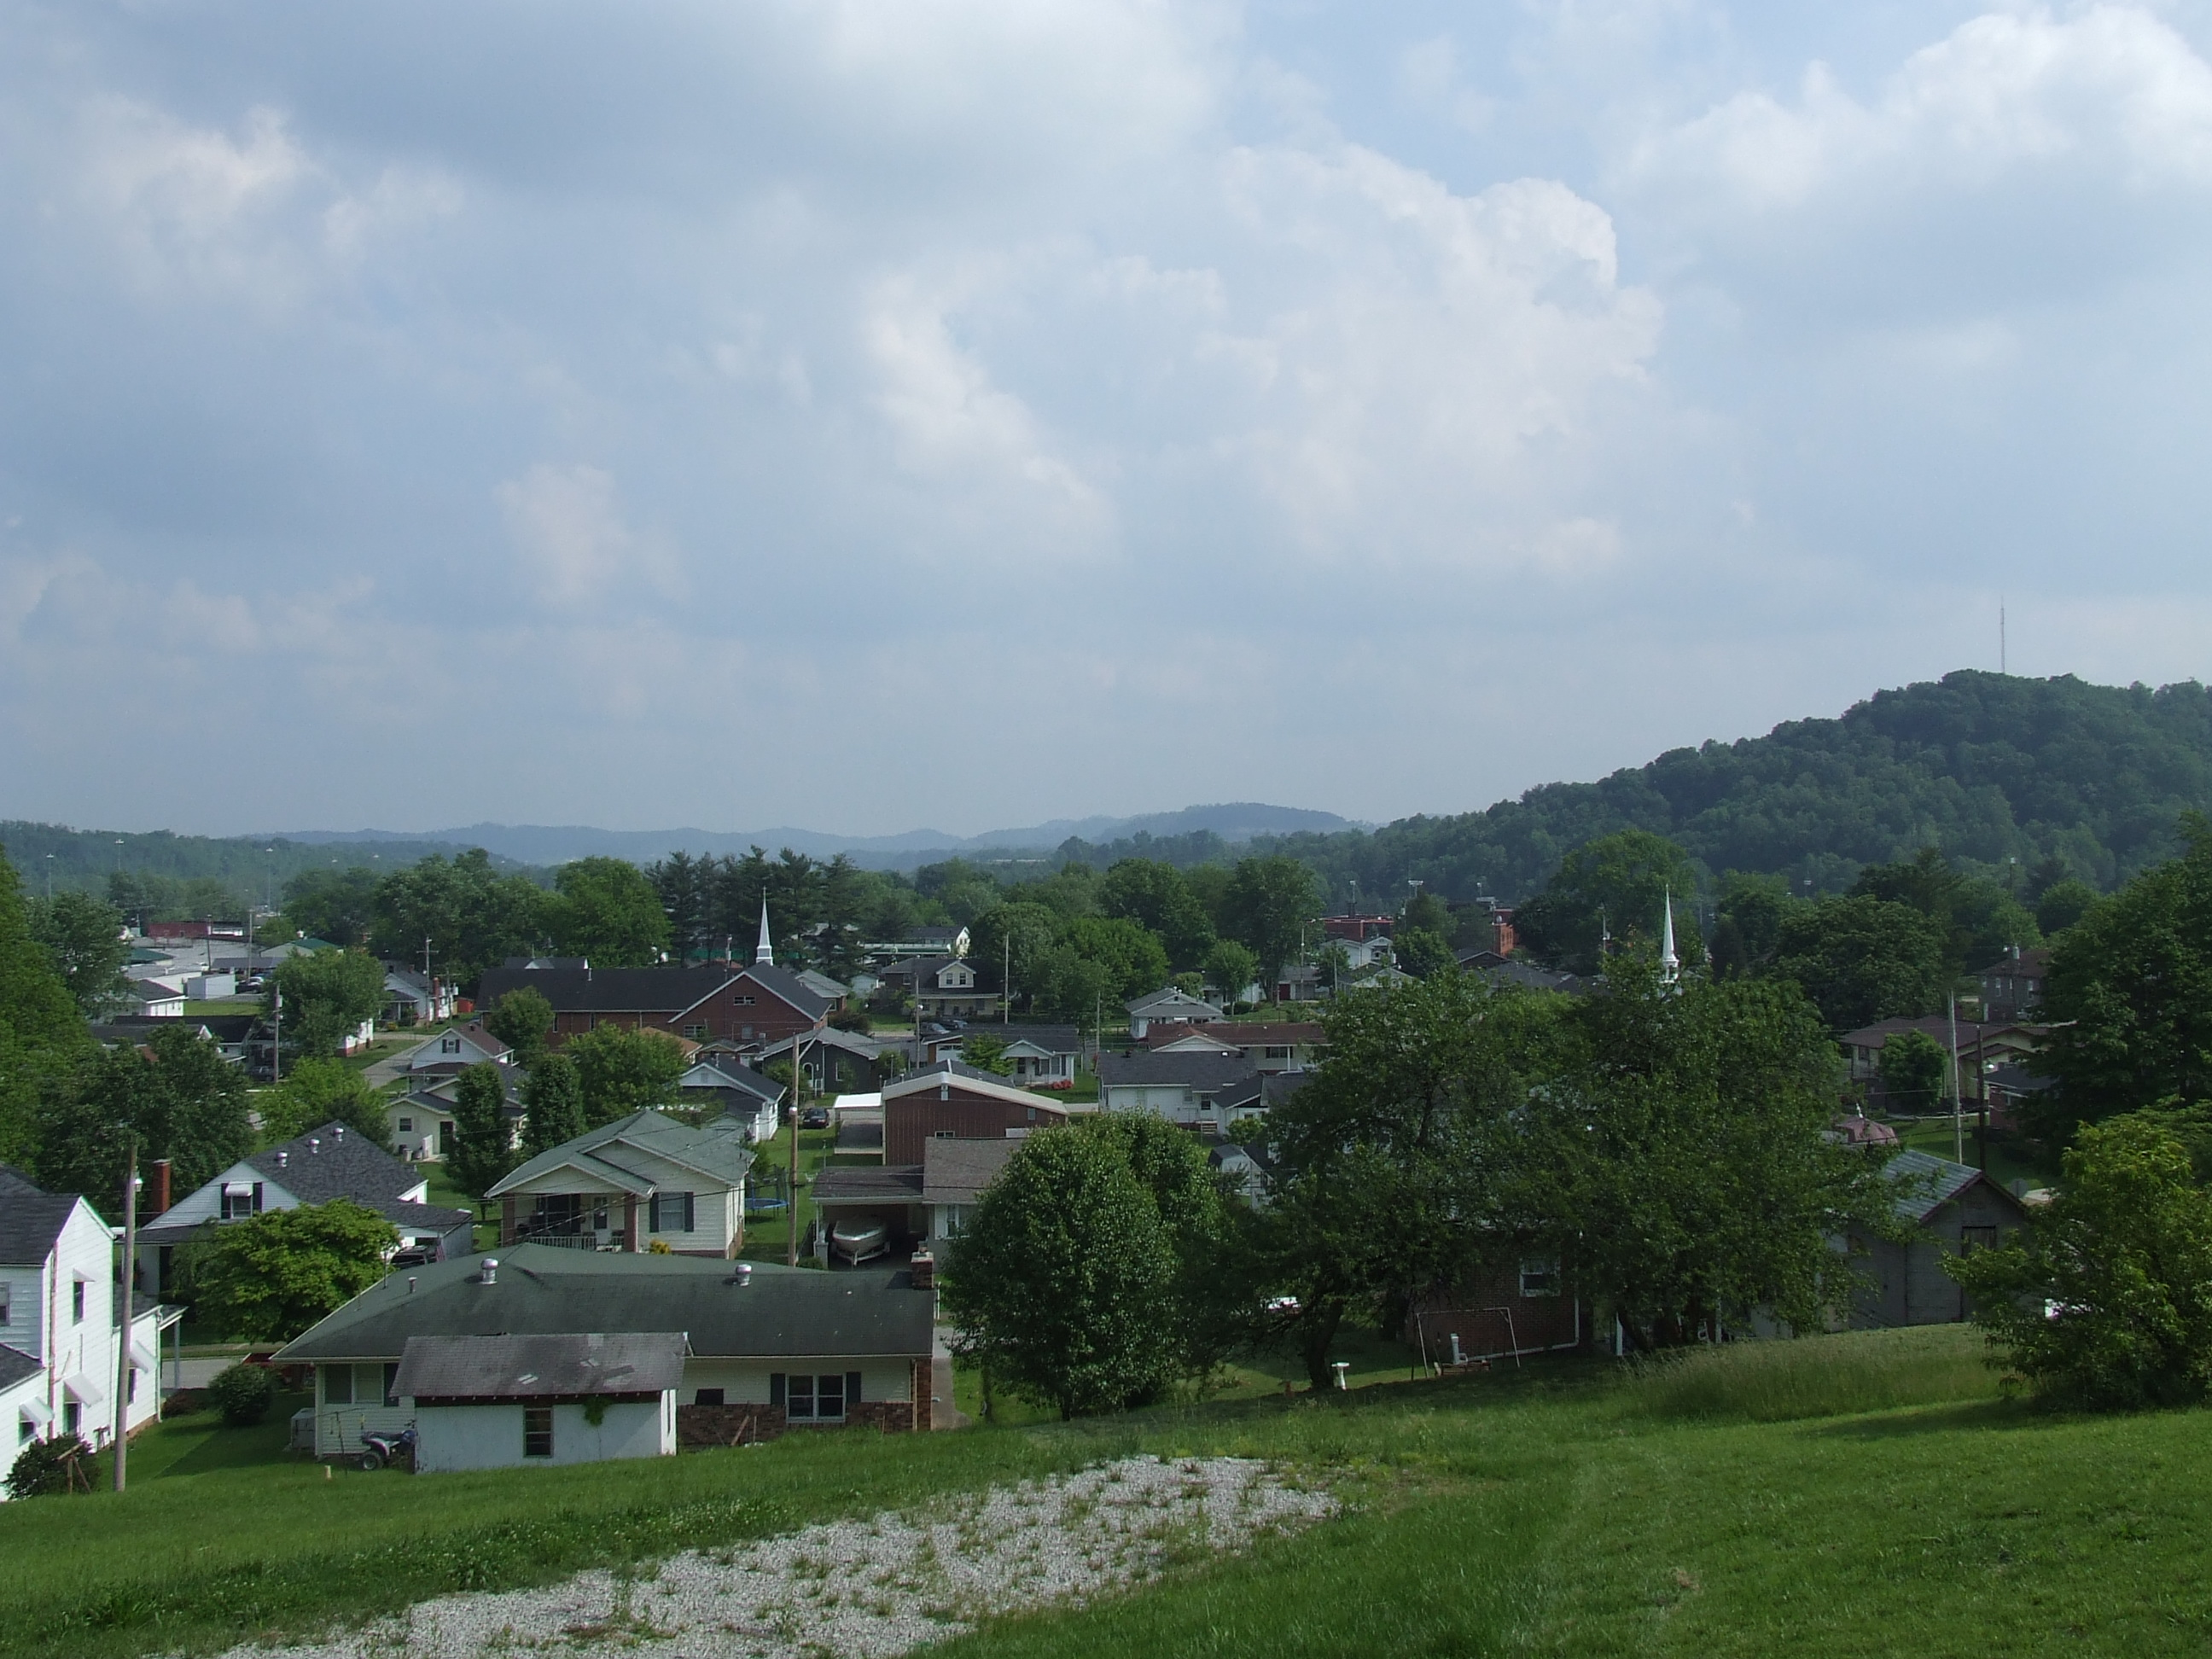 Corbin, Kentucky